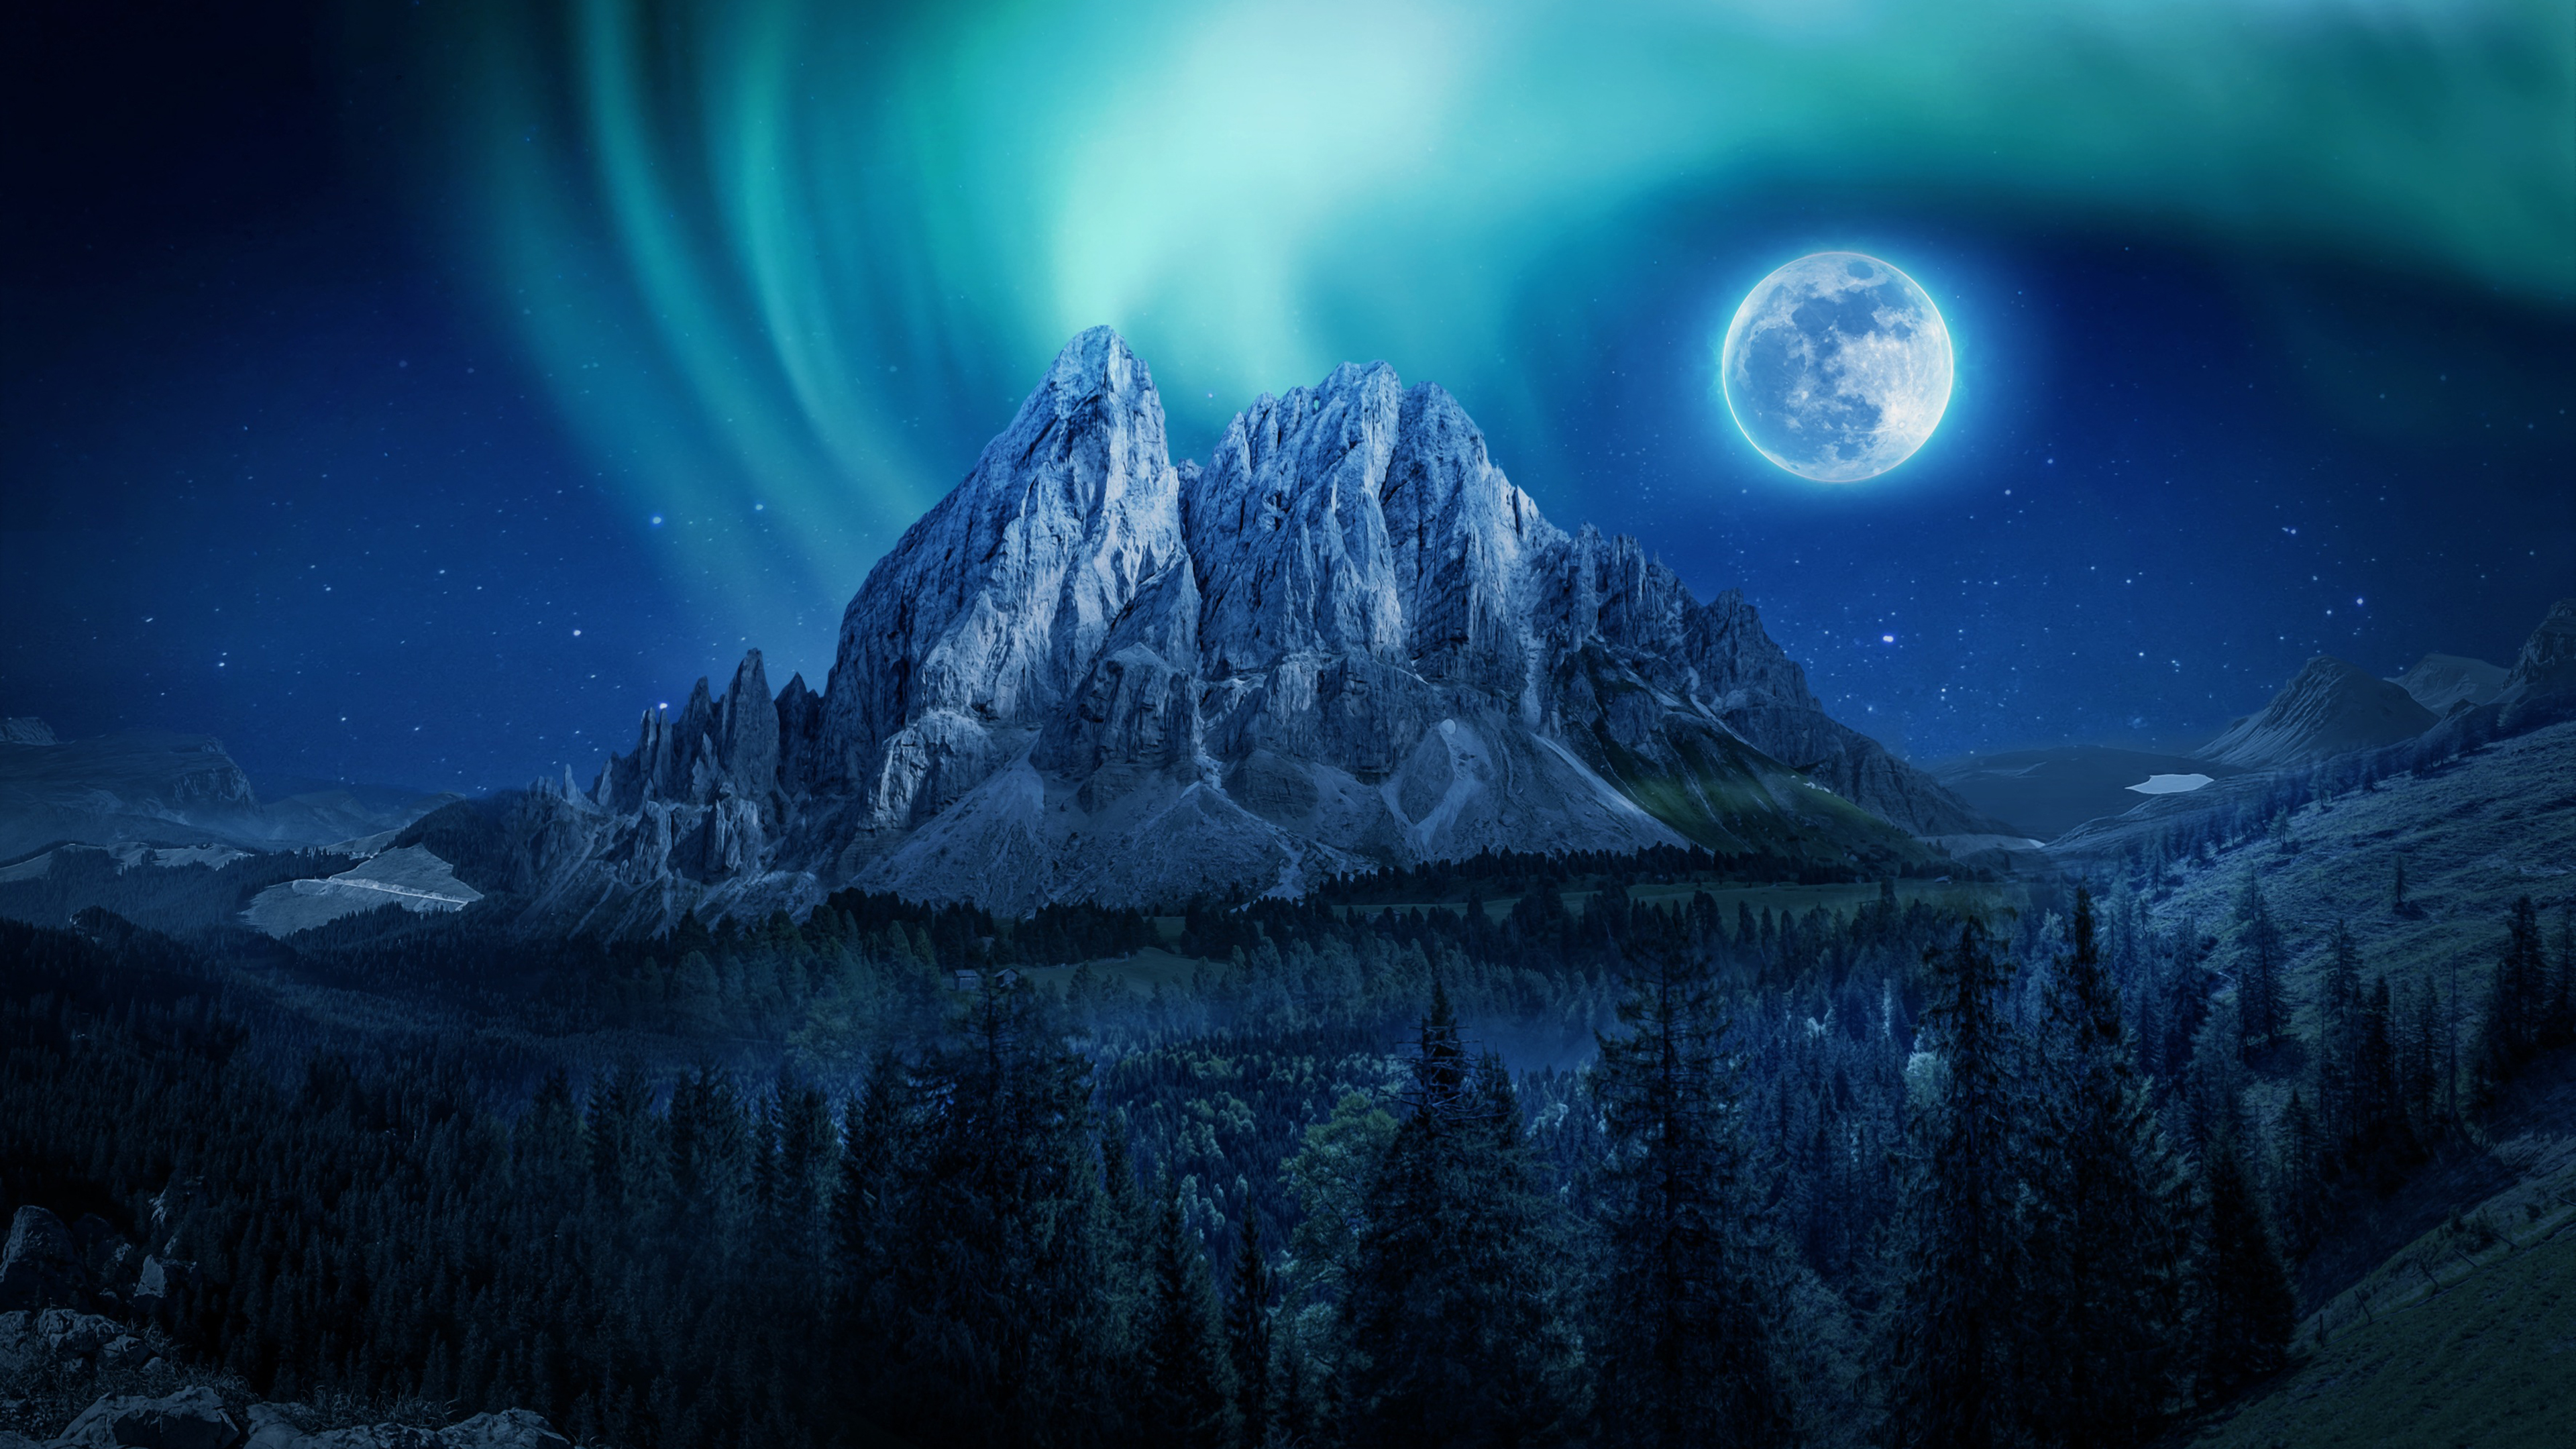 Wallpaper Moon in forest with mountains